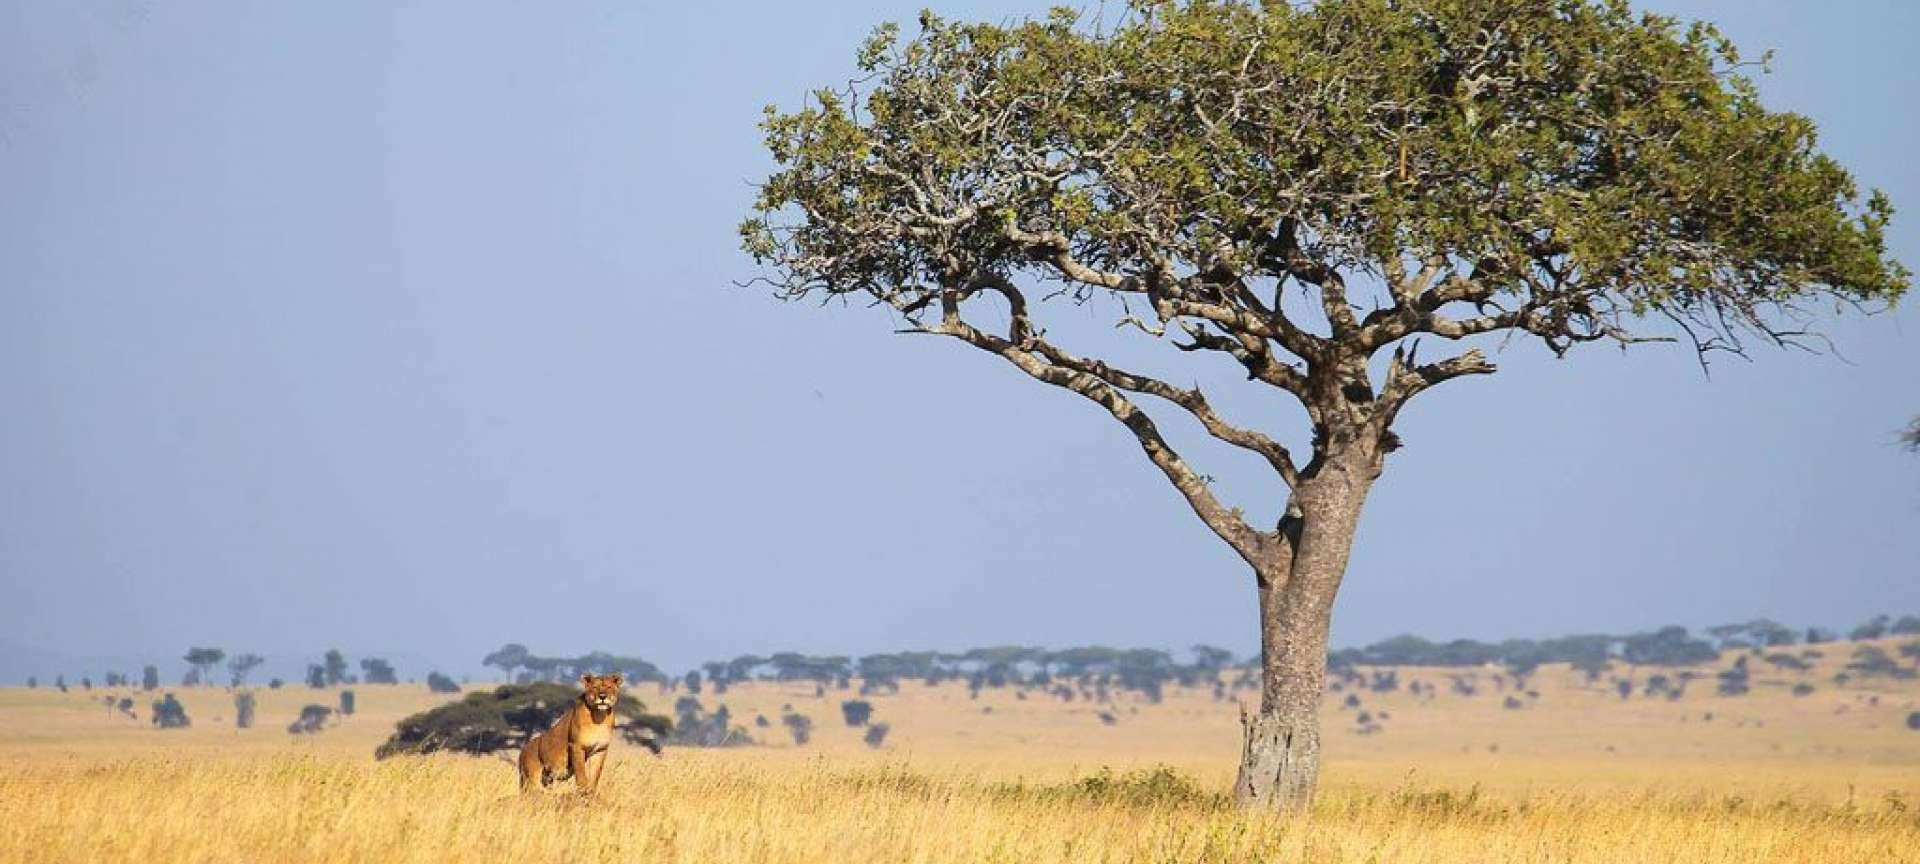 A lone lionness waits patiently beneath an Acacia tree in Tanzania